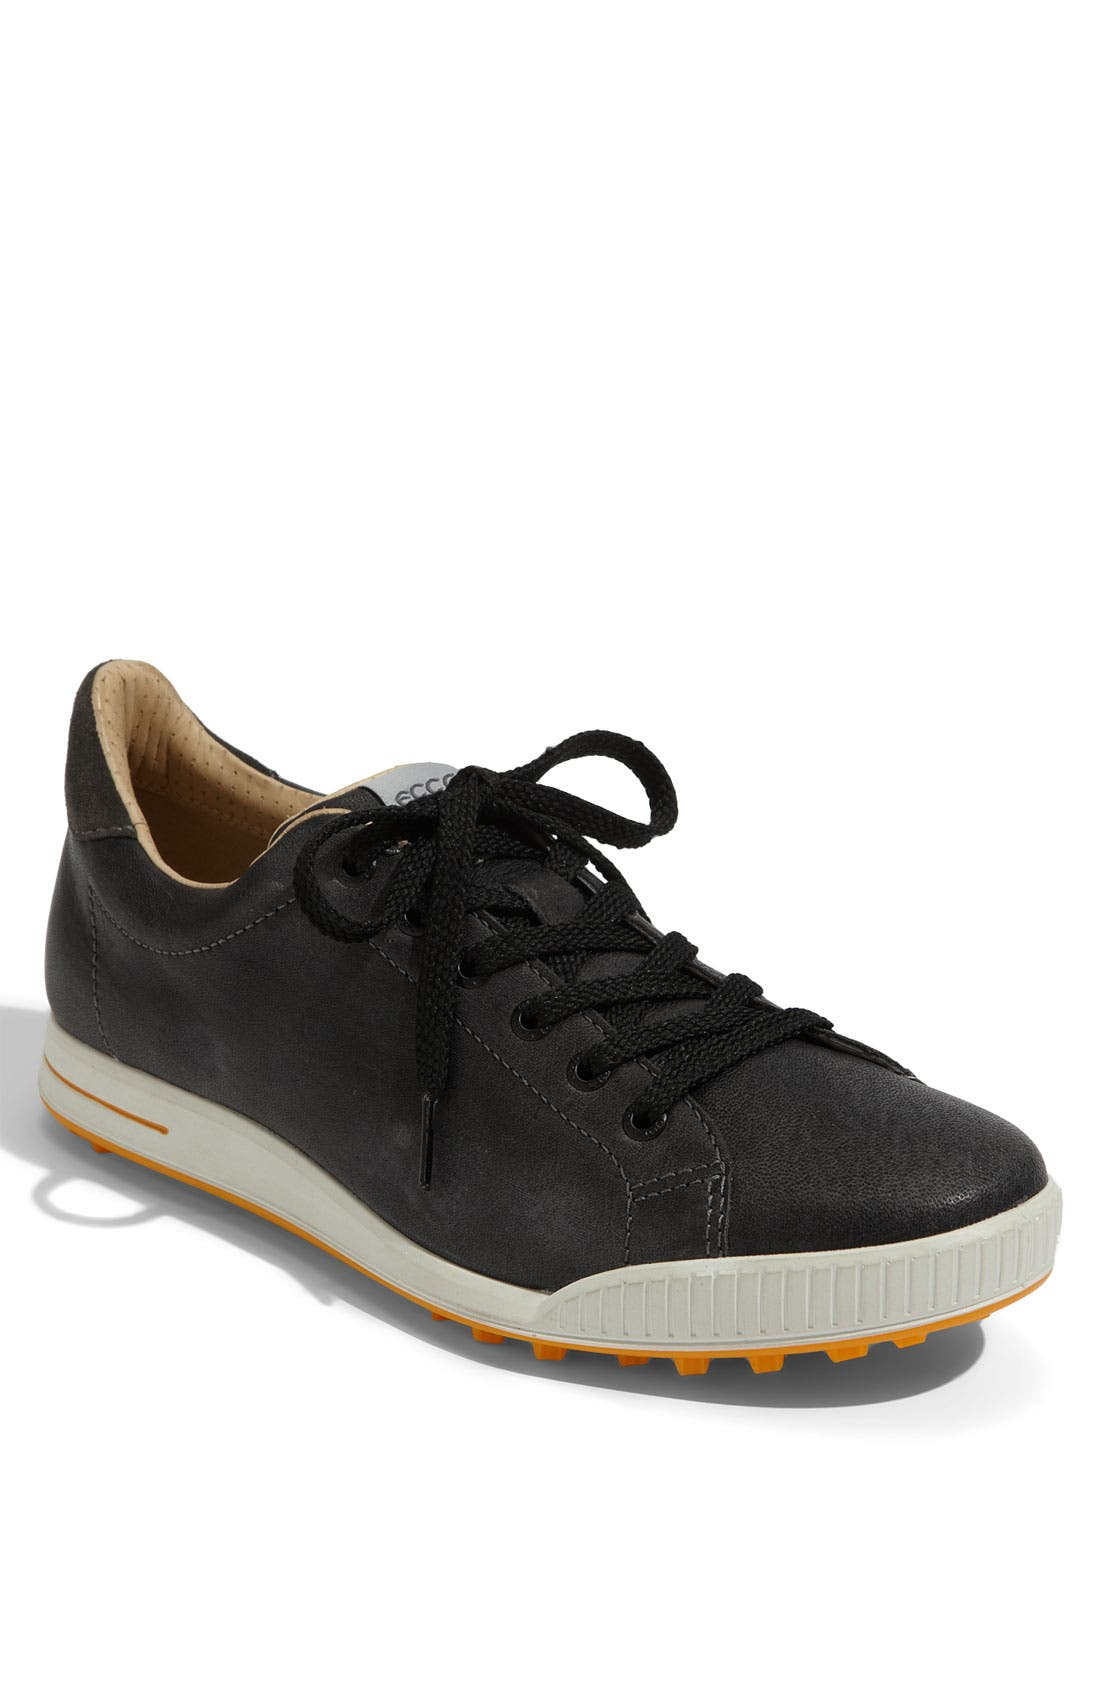 Alternate Image 1 Selected - ECCO 'Golf Street' Sneaker